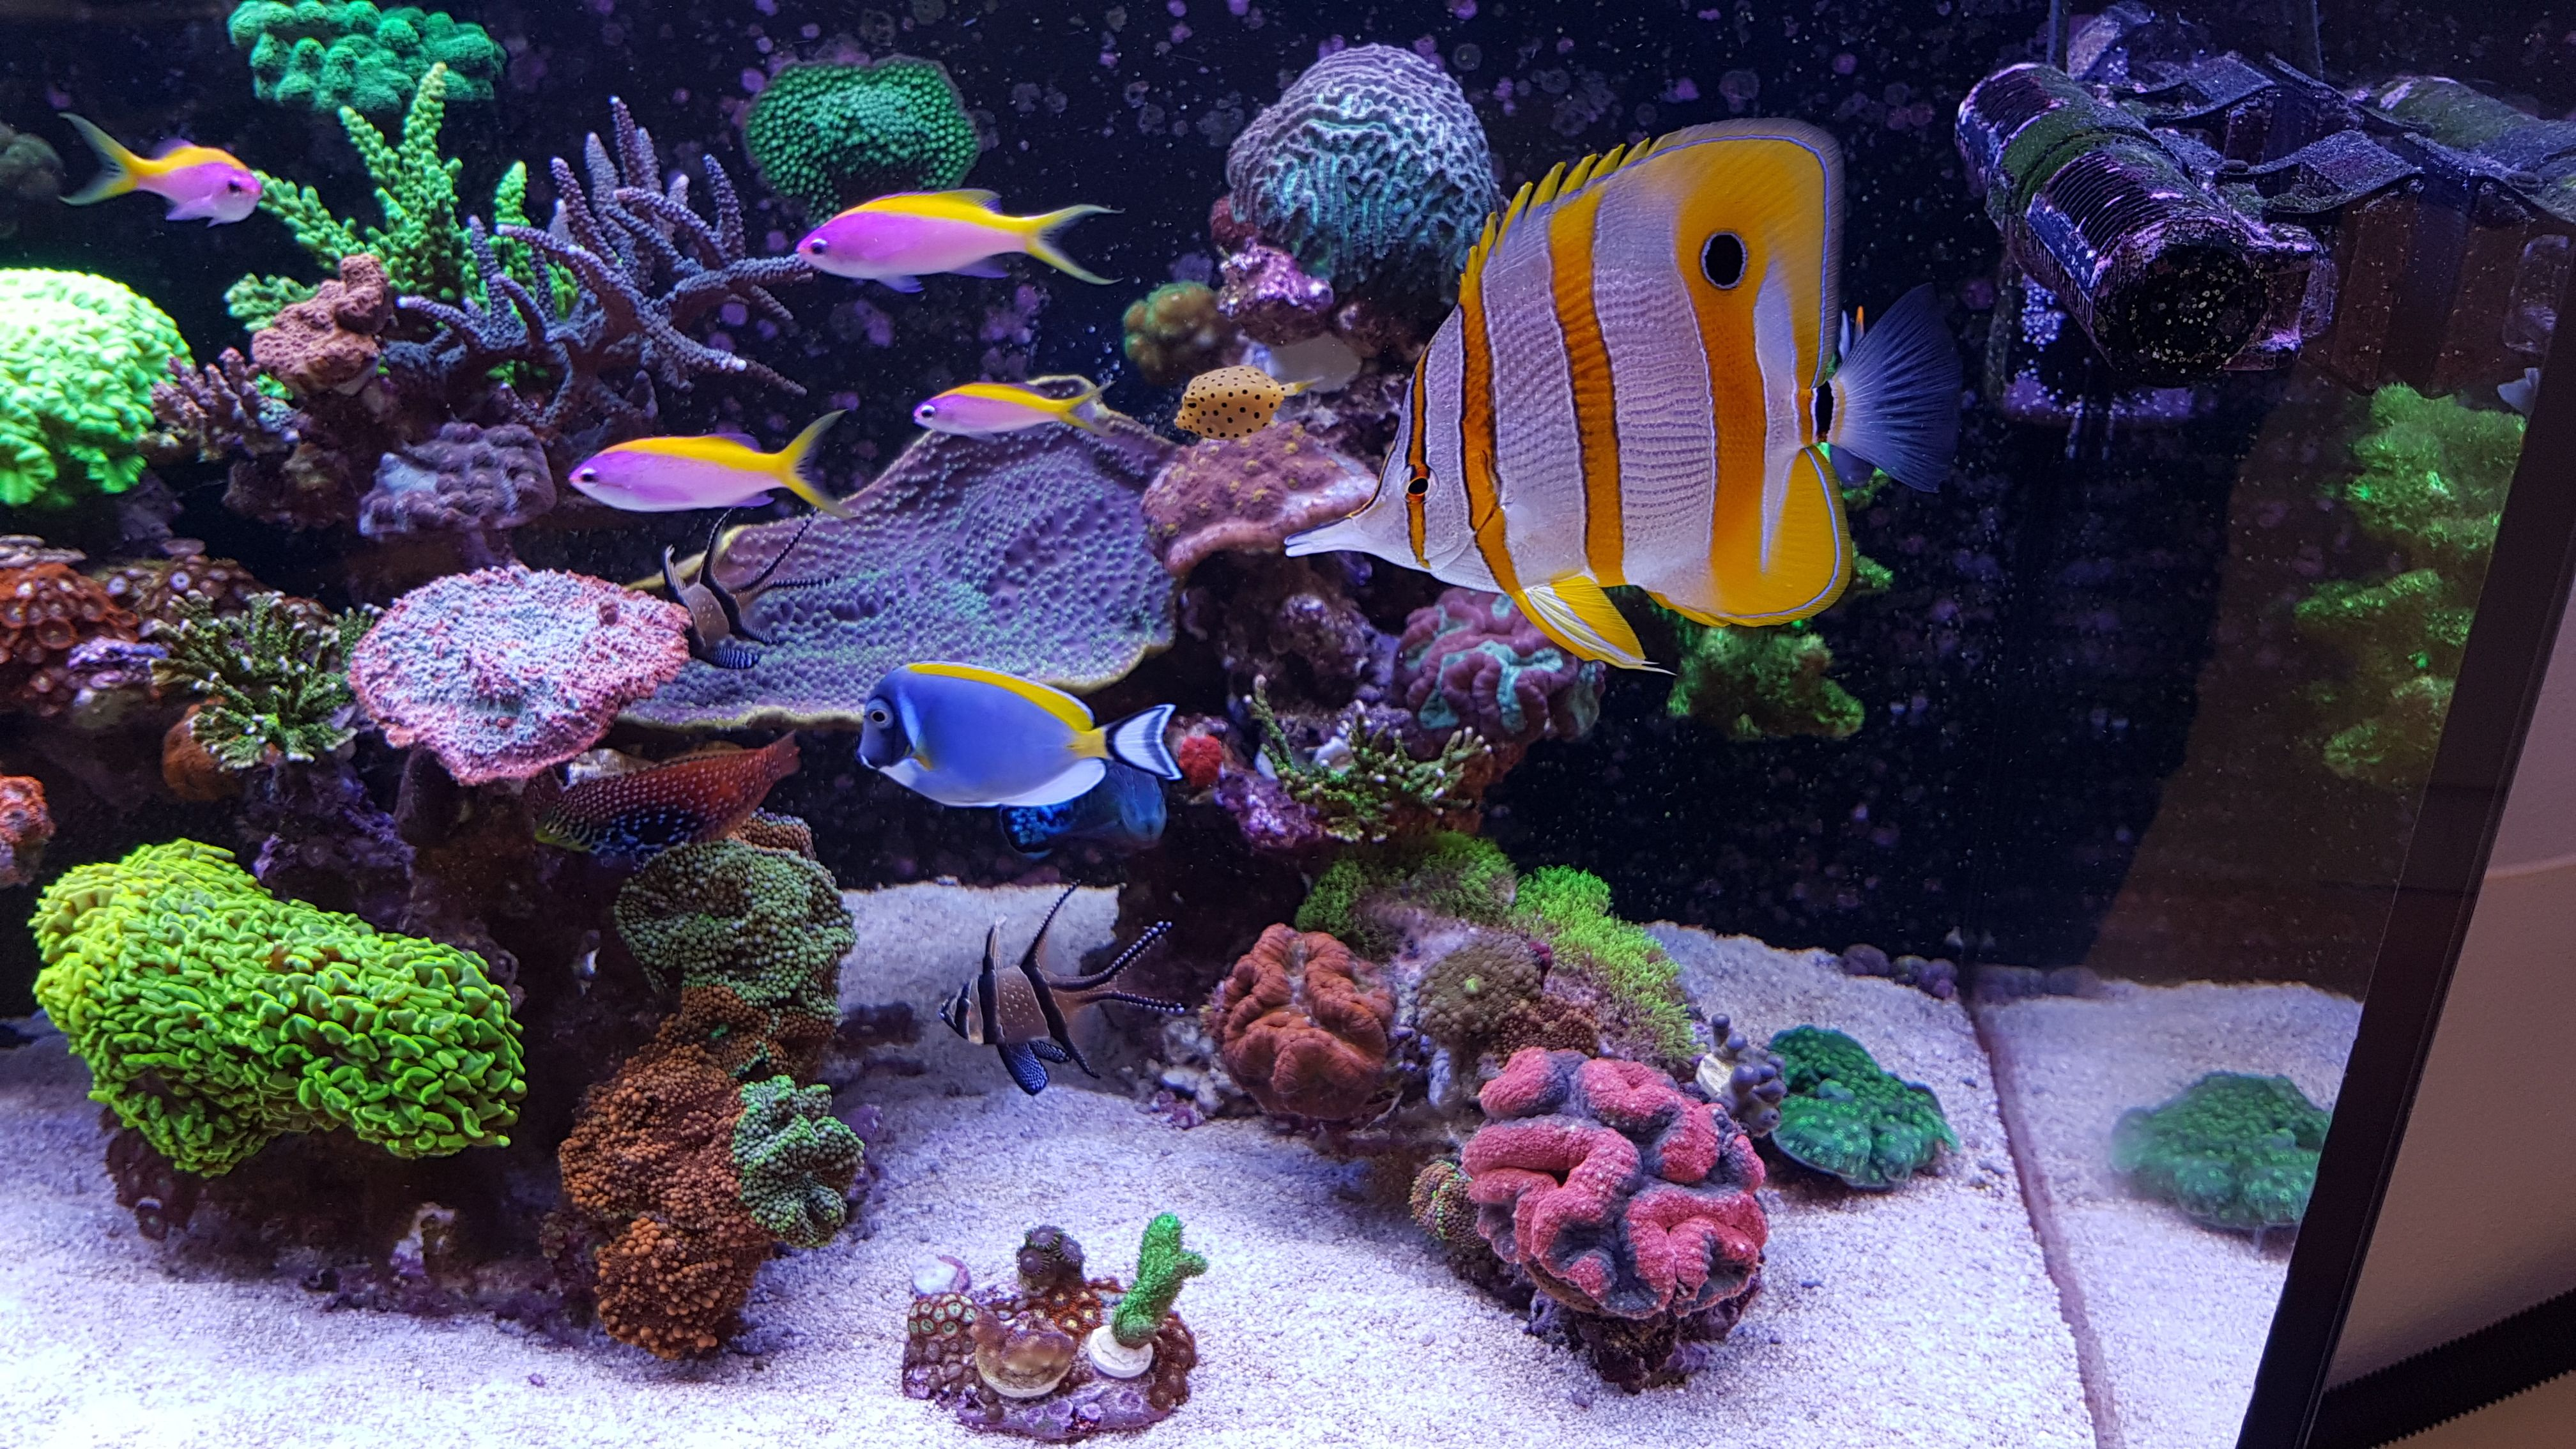 I Want A Show Stopper Fish What S Your Pick For A Center Piece Fish In A Reef Tank What Options Are The Best Click To Read Https Www Reef2reef Co Animaux